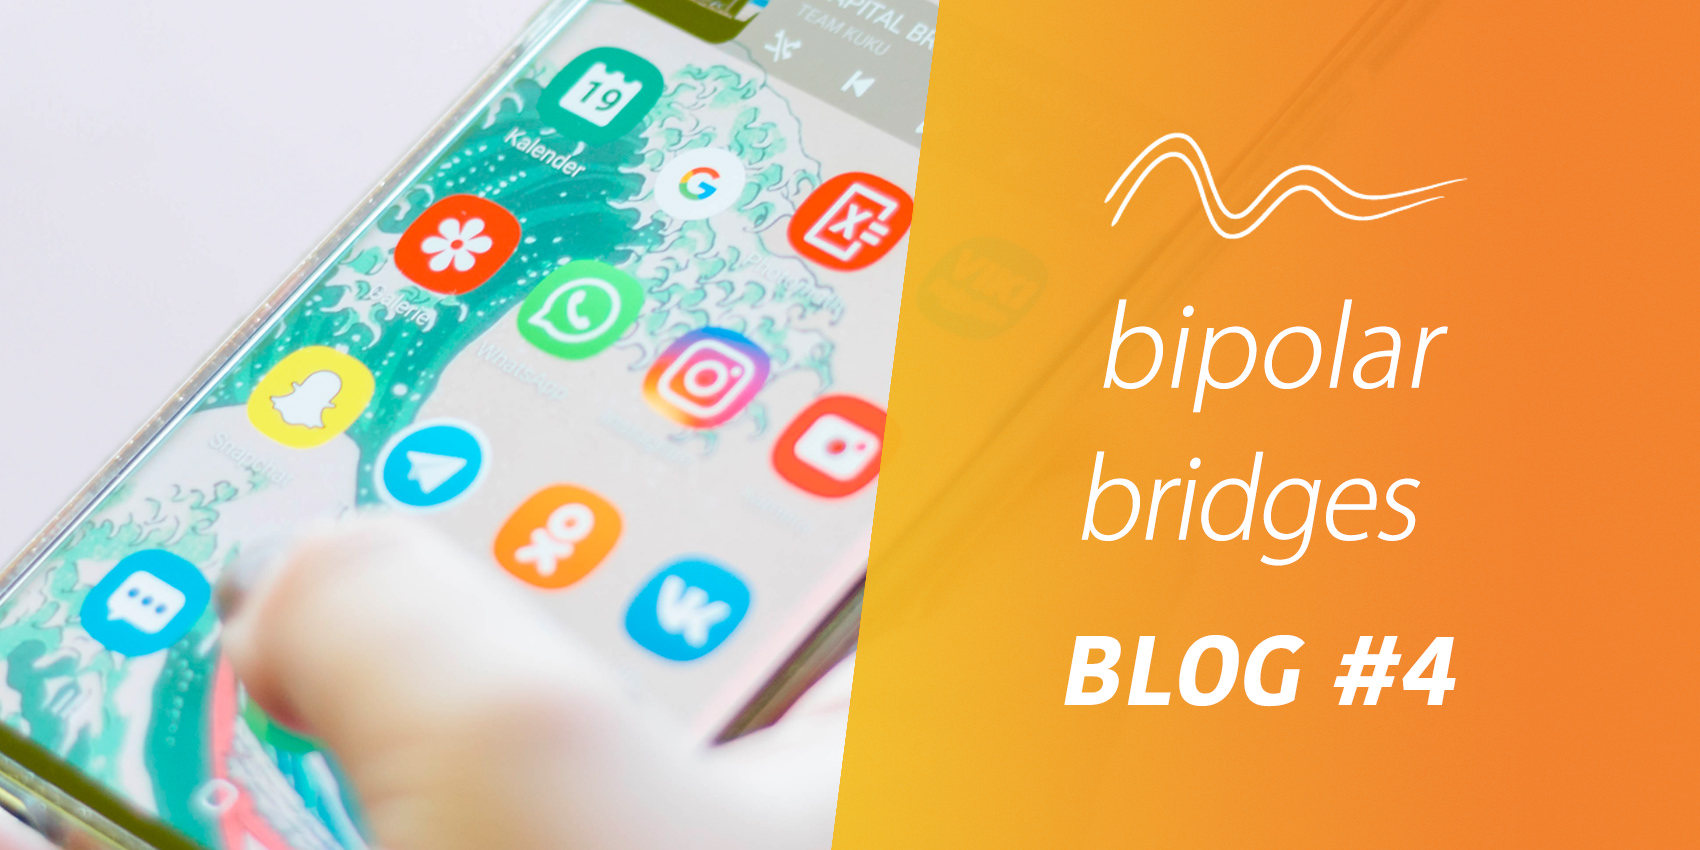 """Bipolar Bridges Update 4: """"There's an app for that!"""""""